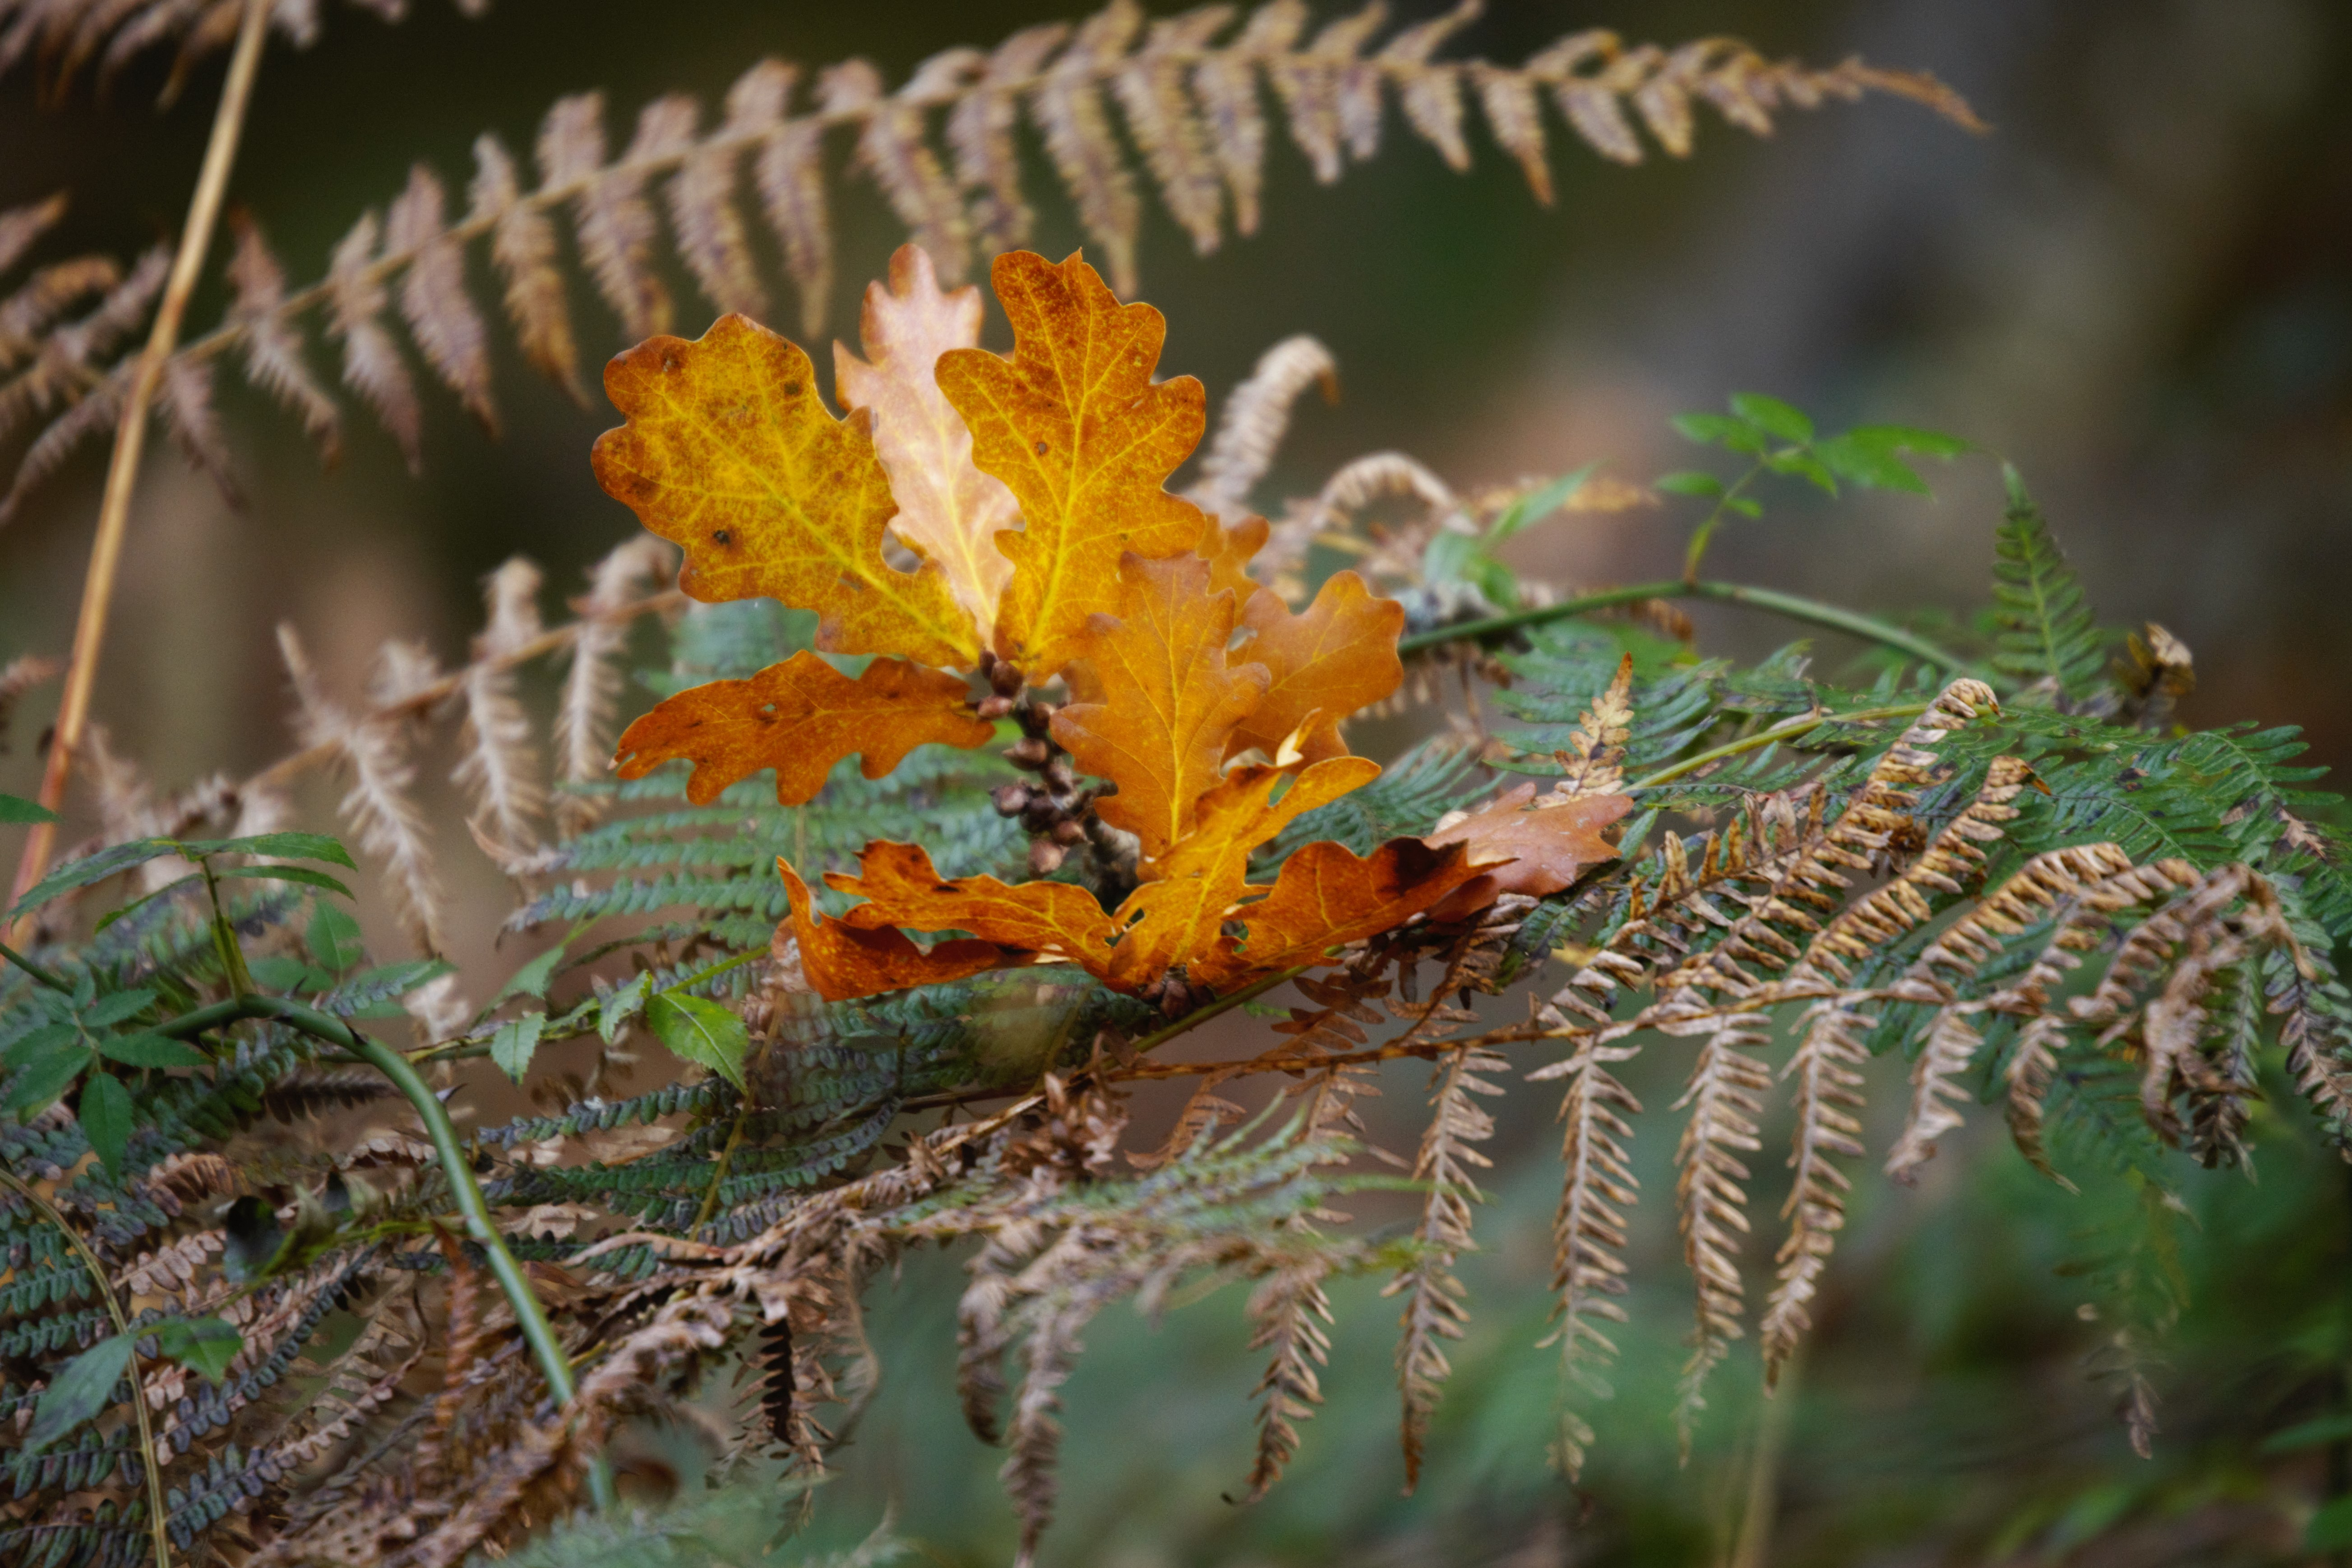 Oak leaf and ferns